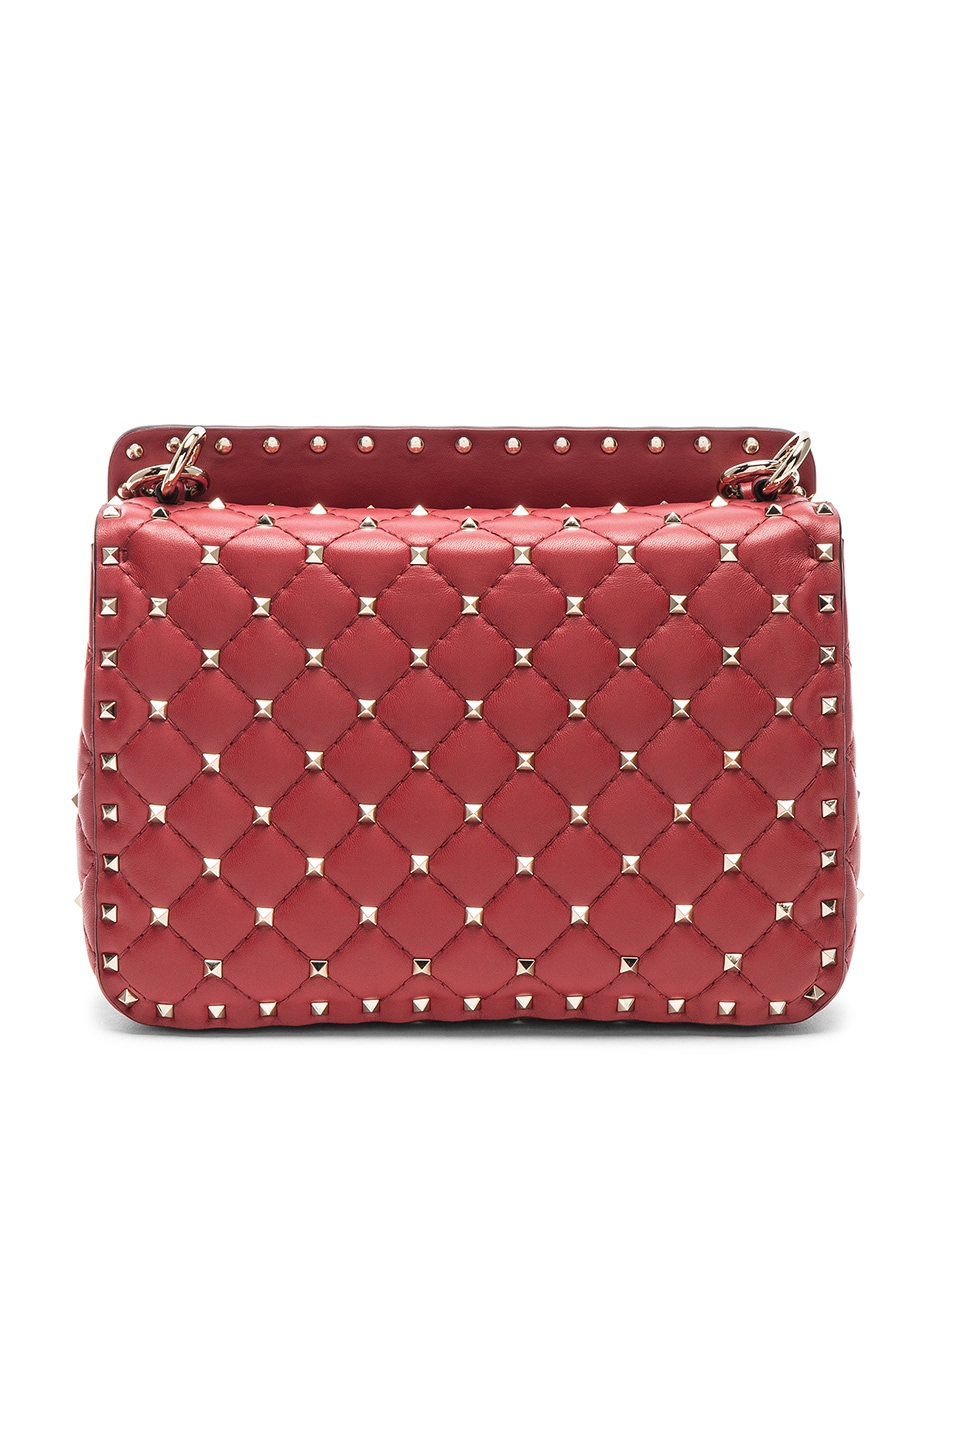 Image 3 of Valentino Rockstud Spike Medium Shoulder Bag in Red